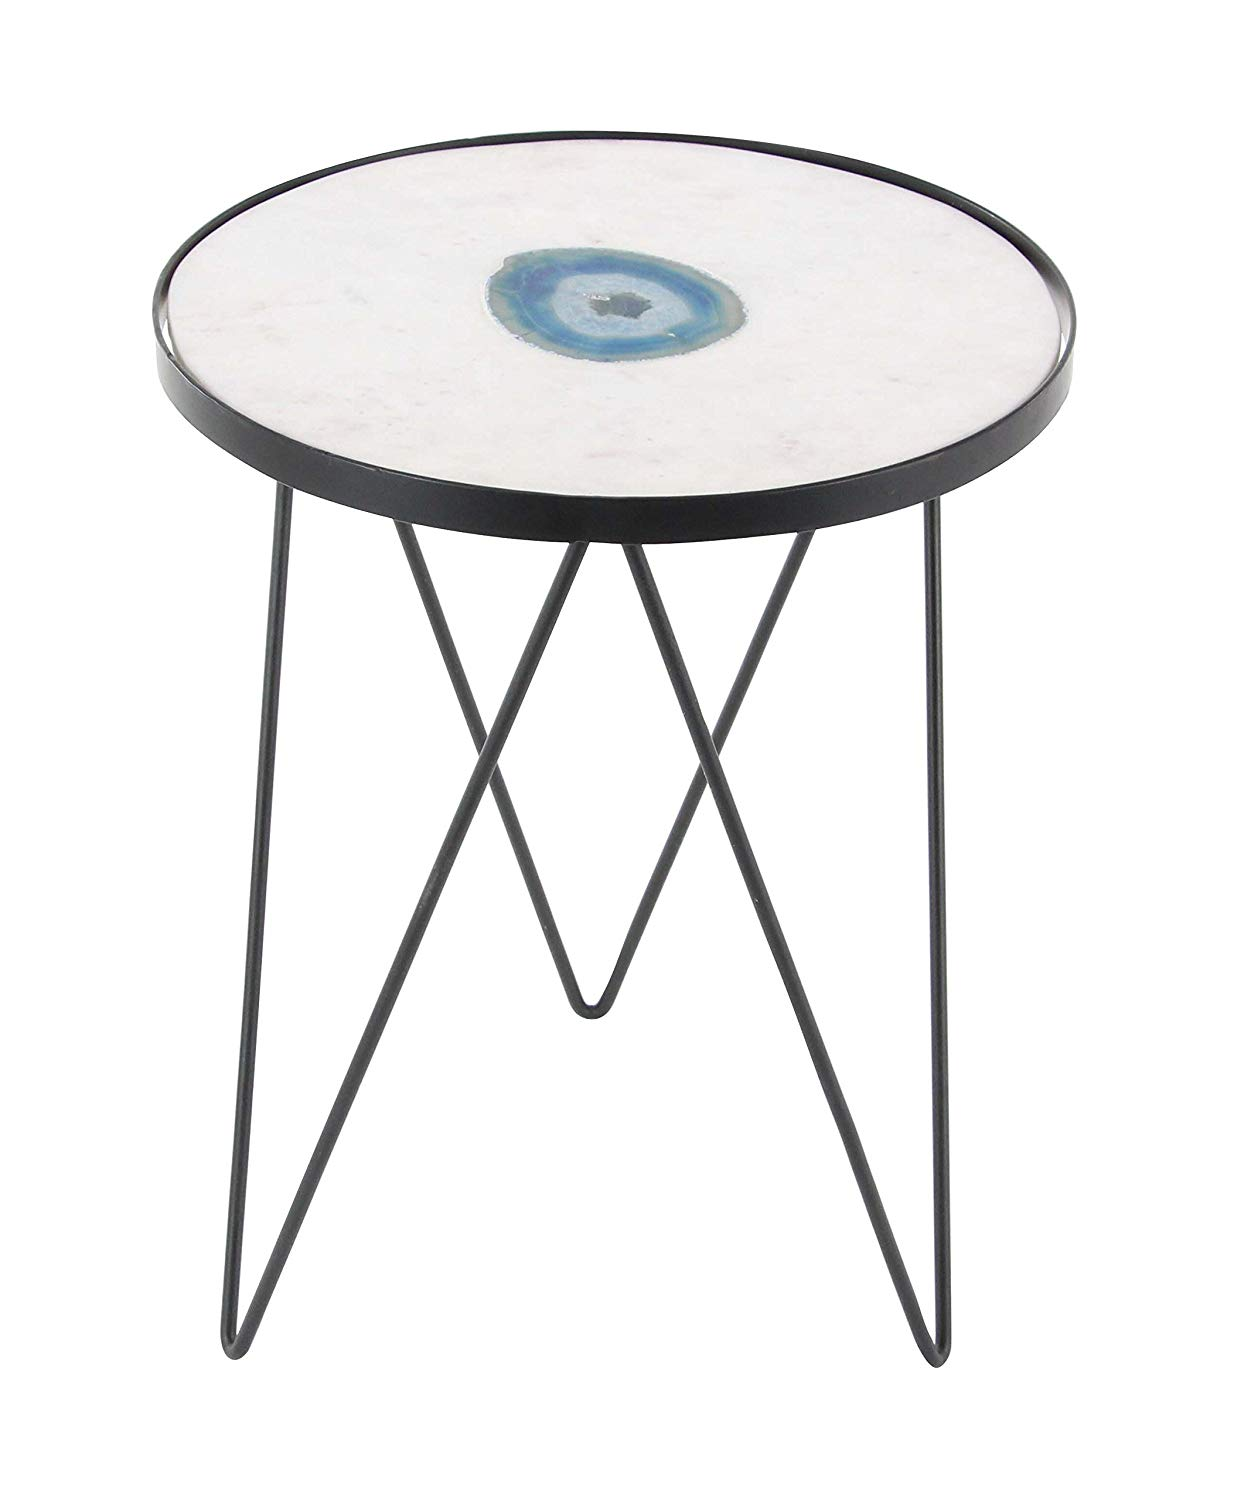 small black accent table find blue get quotations deco metal and marble agat grey linen tablecloth white counter height dining set mid century modern chairs reproductions corner